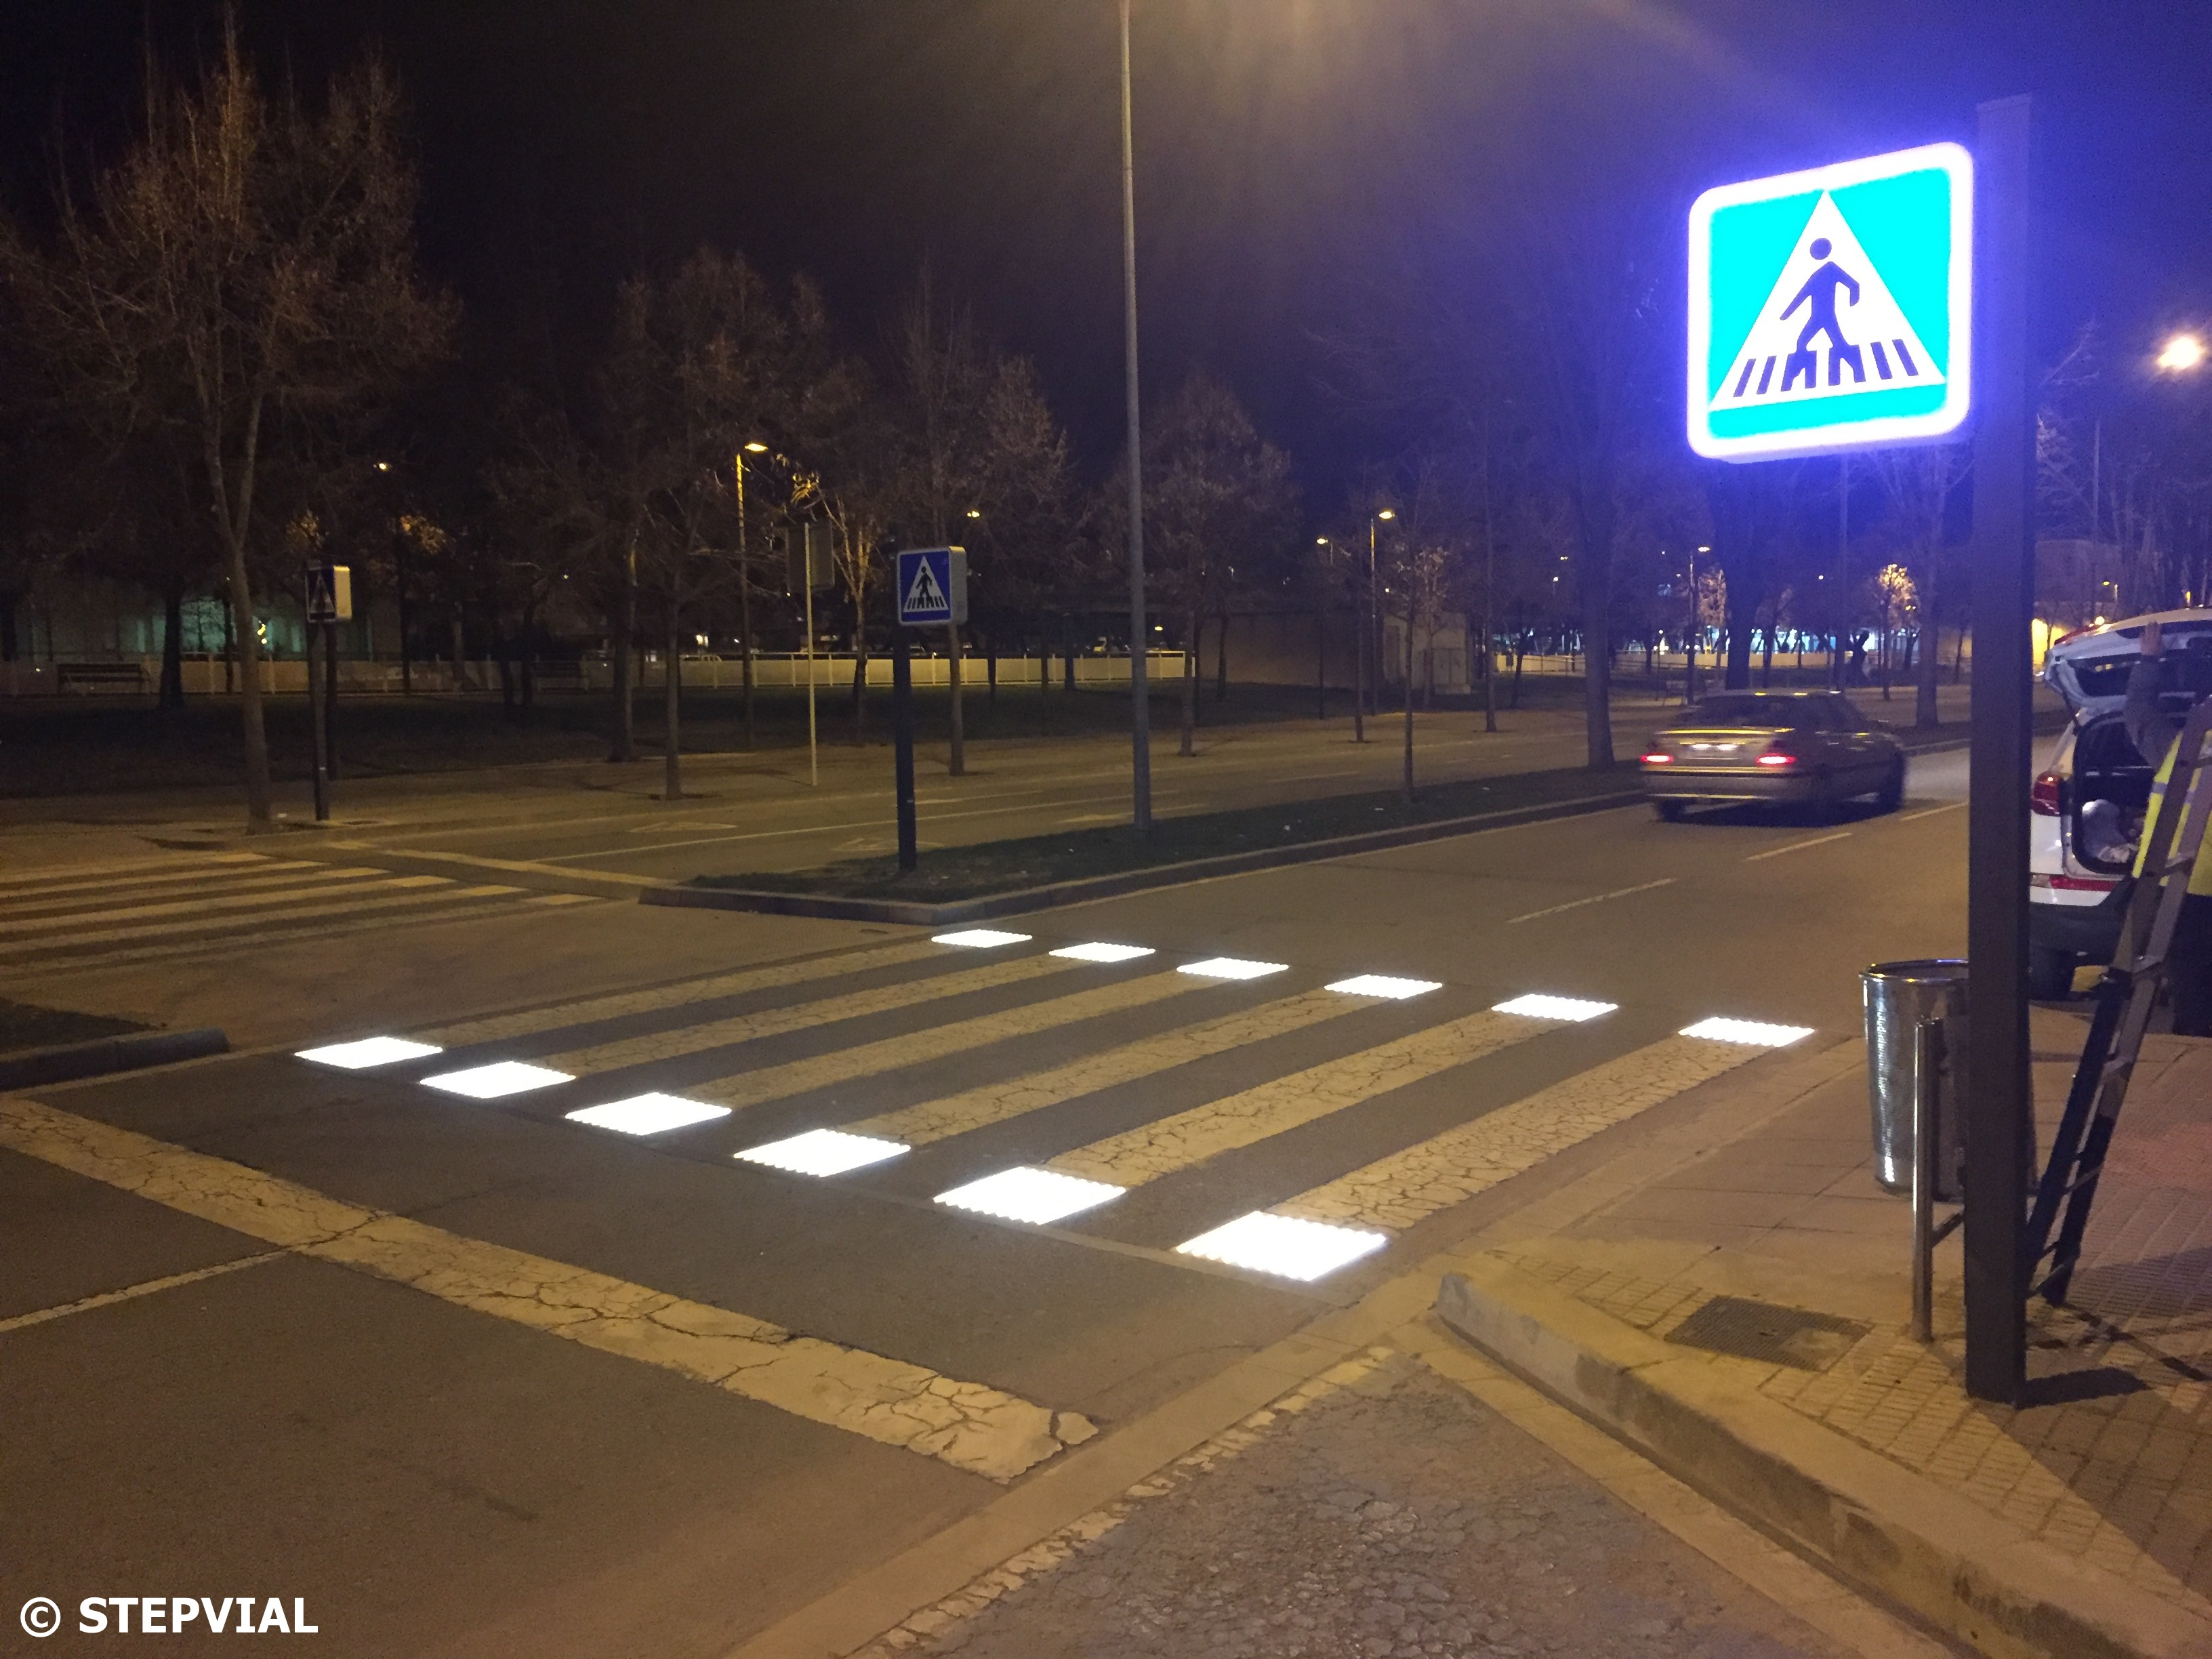 Smart Pedestrian Crossing in Vic (Barcelona)